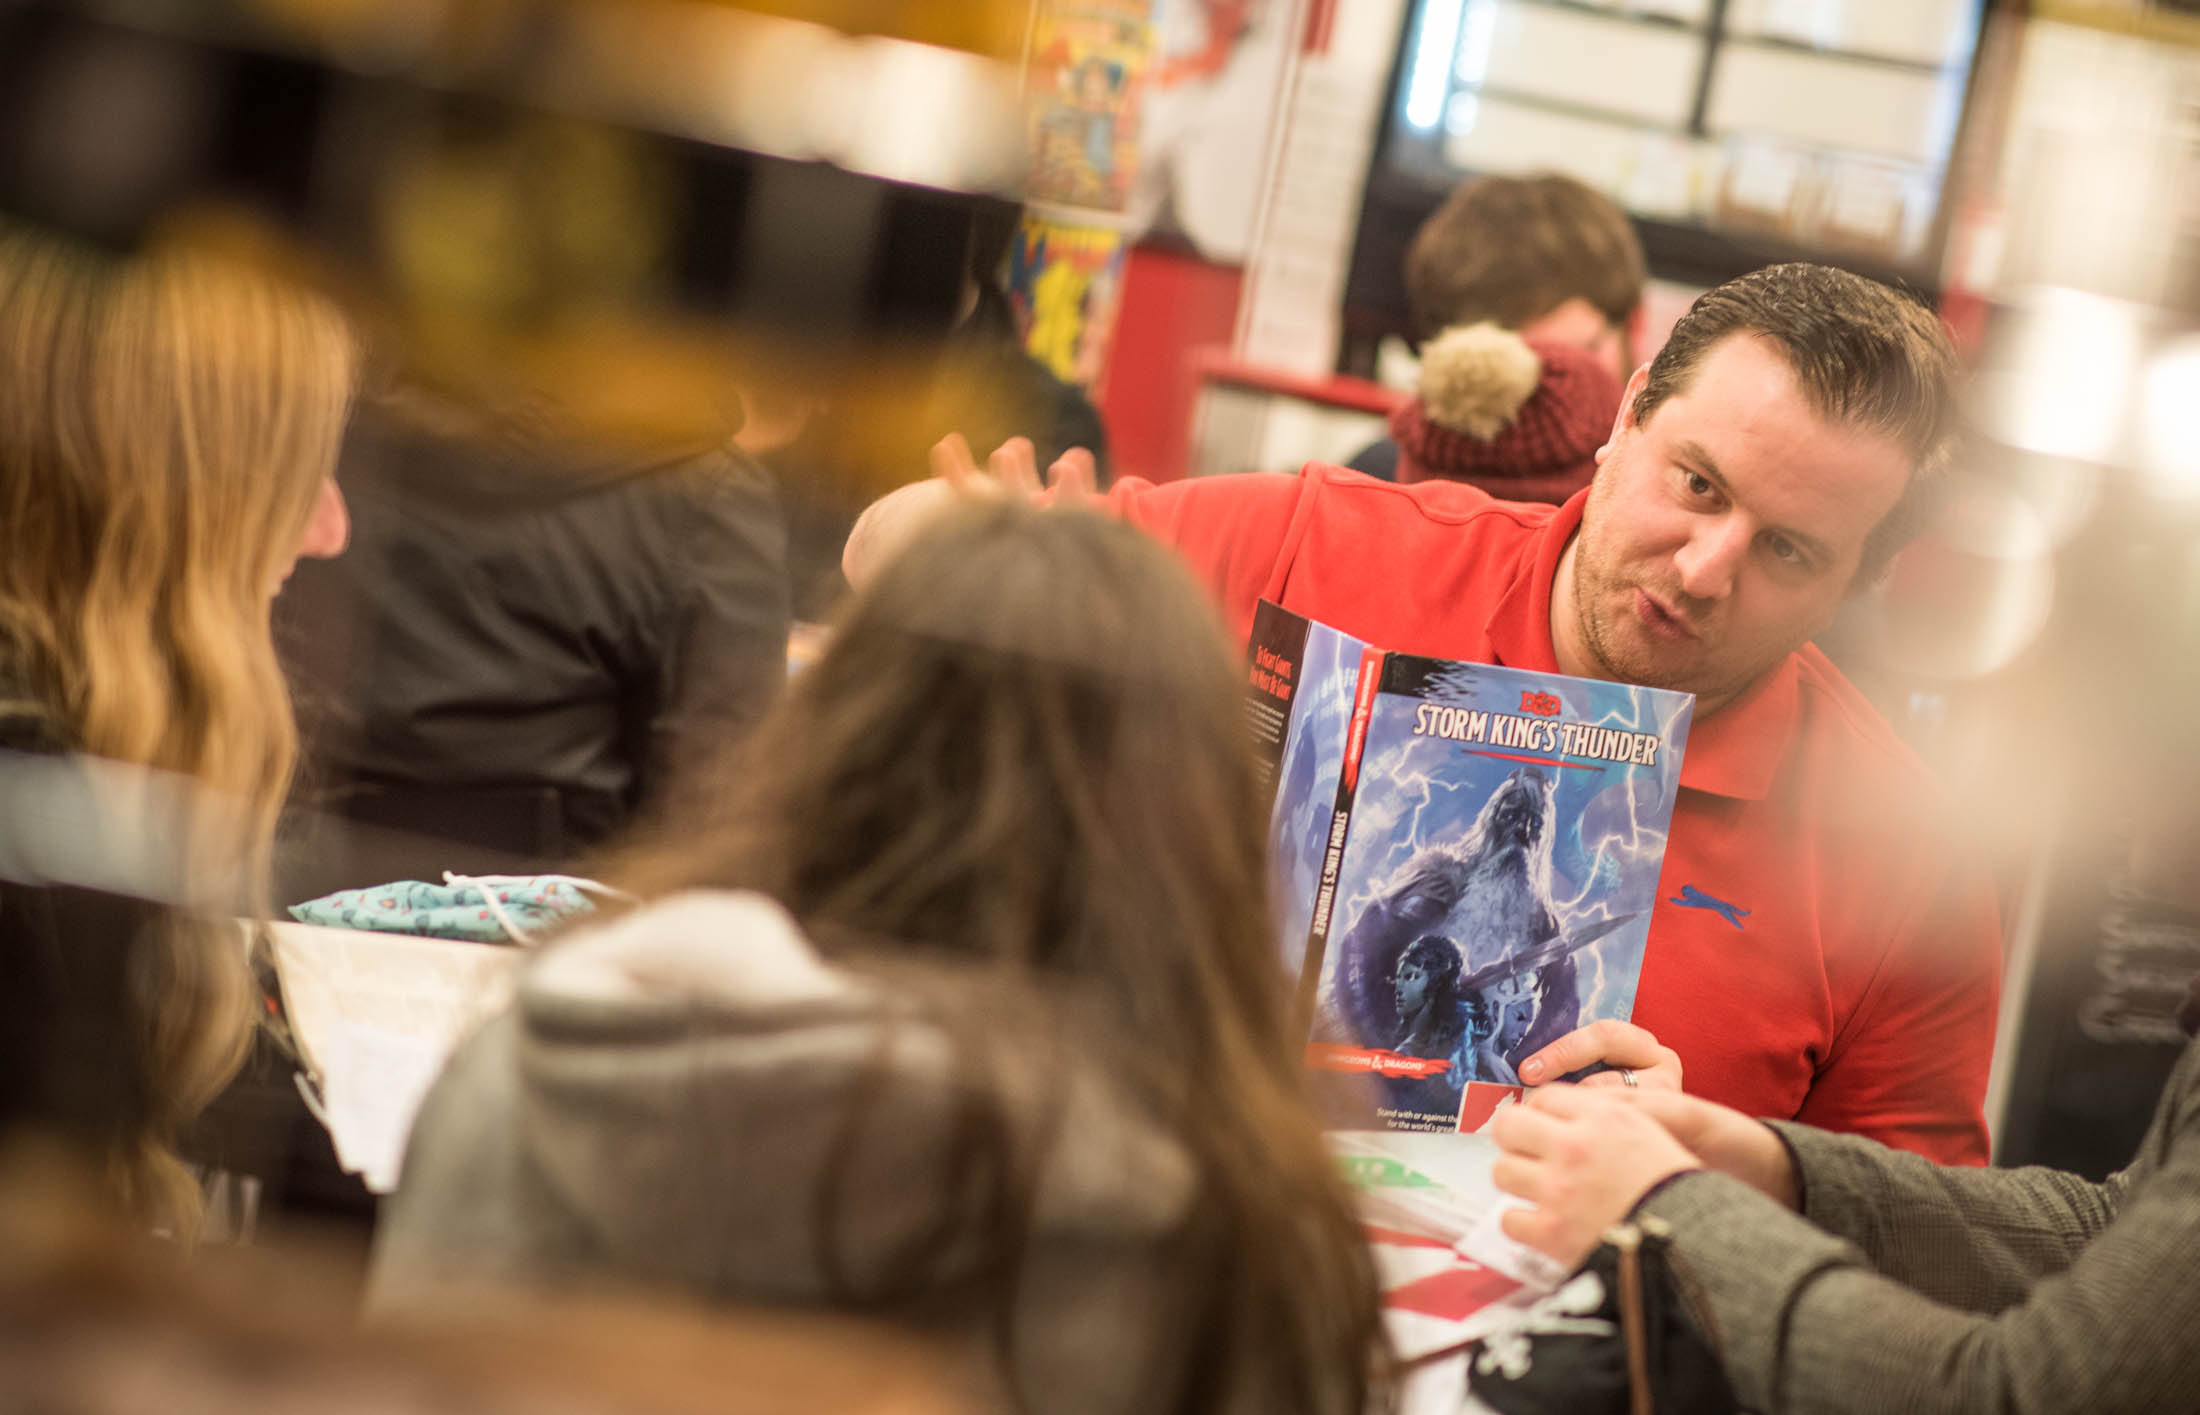 Stuart, owner of Big Dog Books, being a dungeon master